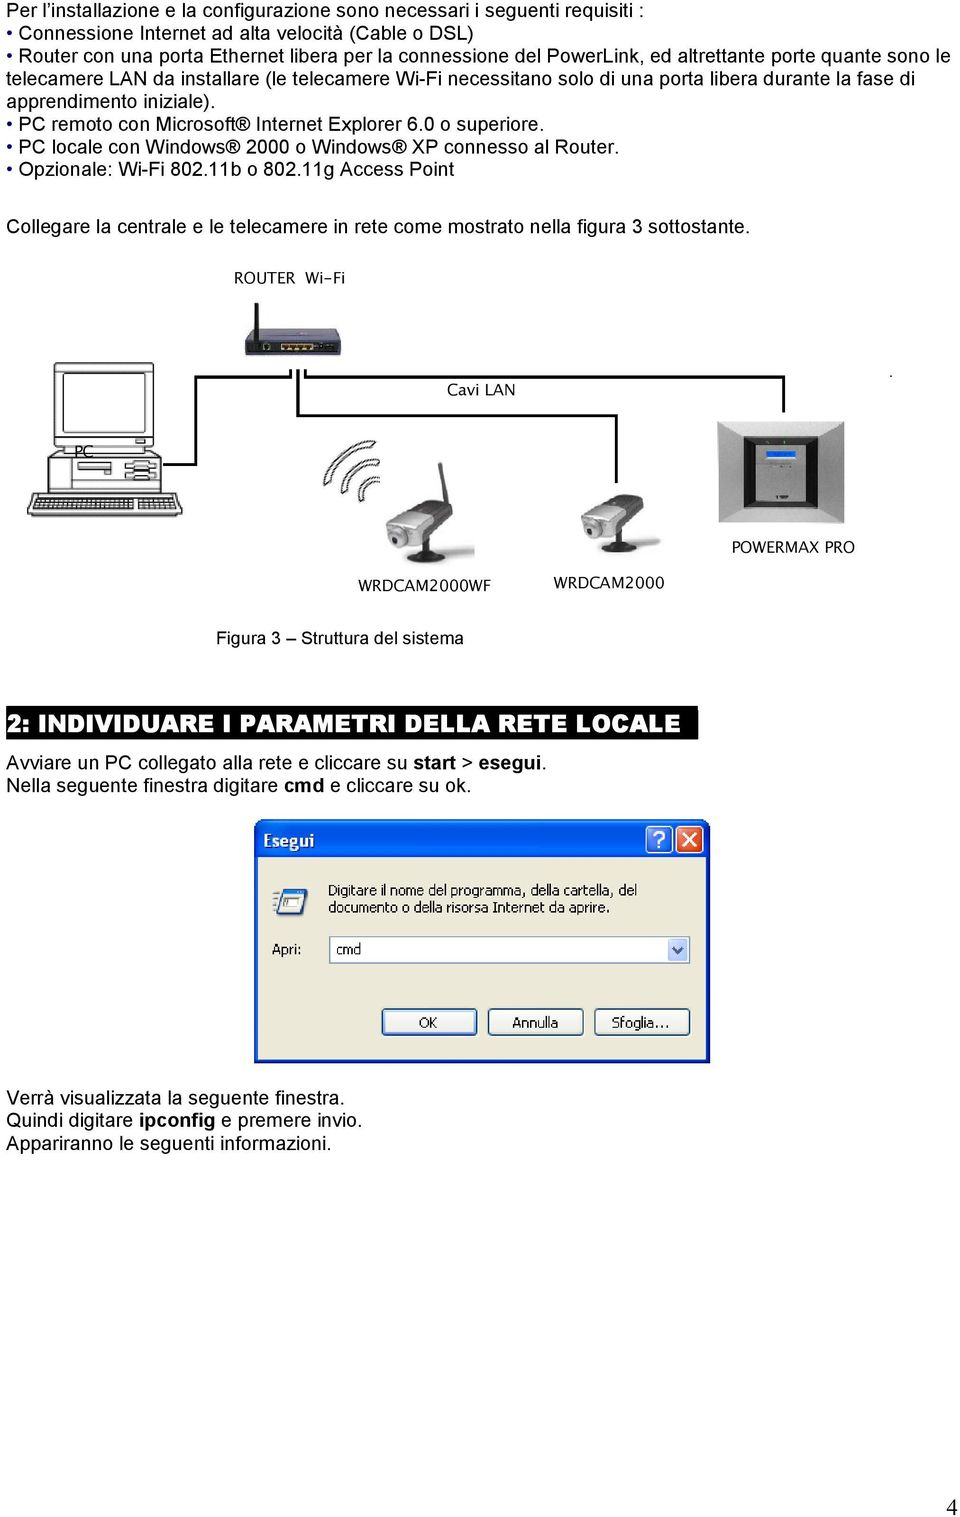 PC remoto con Microsoft Internet Explorer 6.0 o superiore. PC locale con Windows 2000 o Windows XP connesso al Router. Opzionale: Wi-Fi 802.11b o 802.